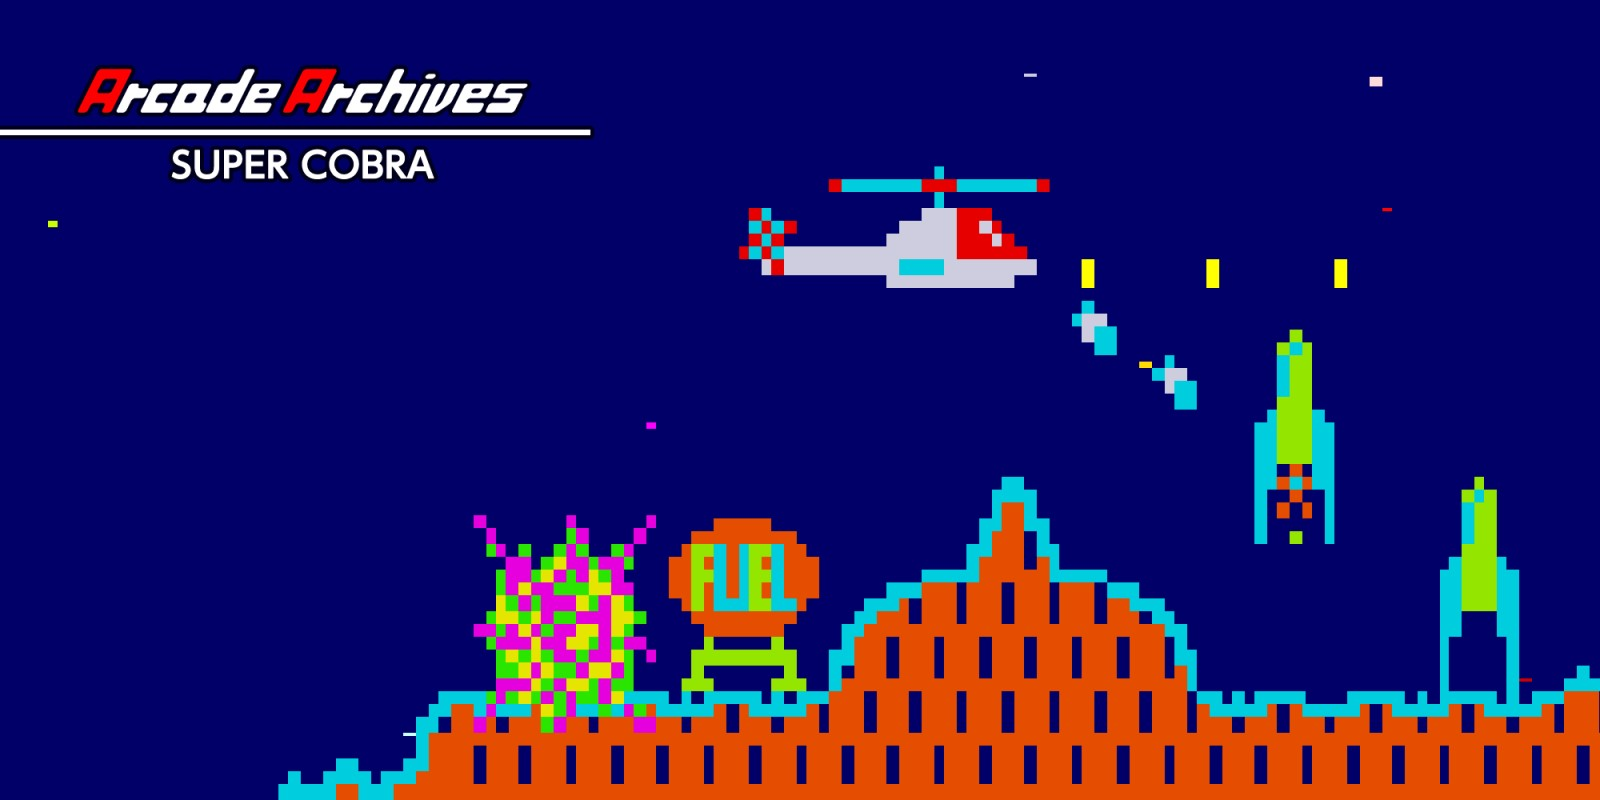 Arcade Archives SUPER COBRA